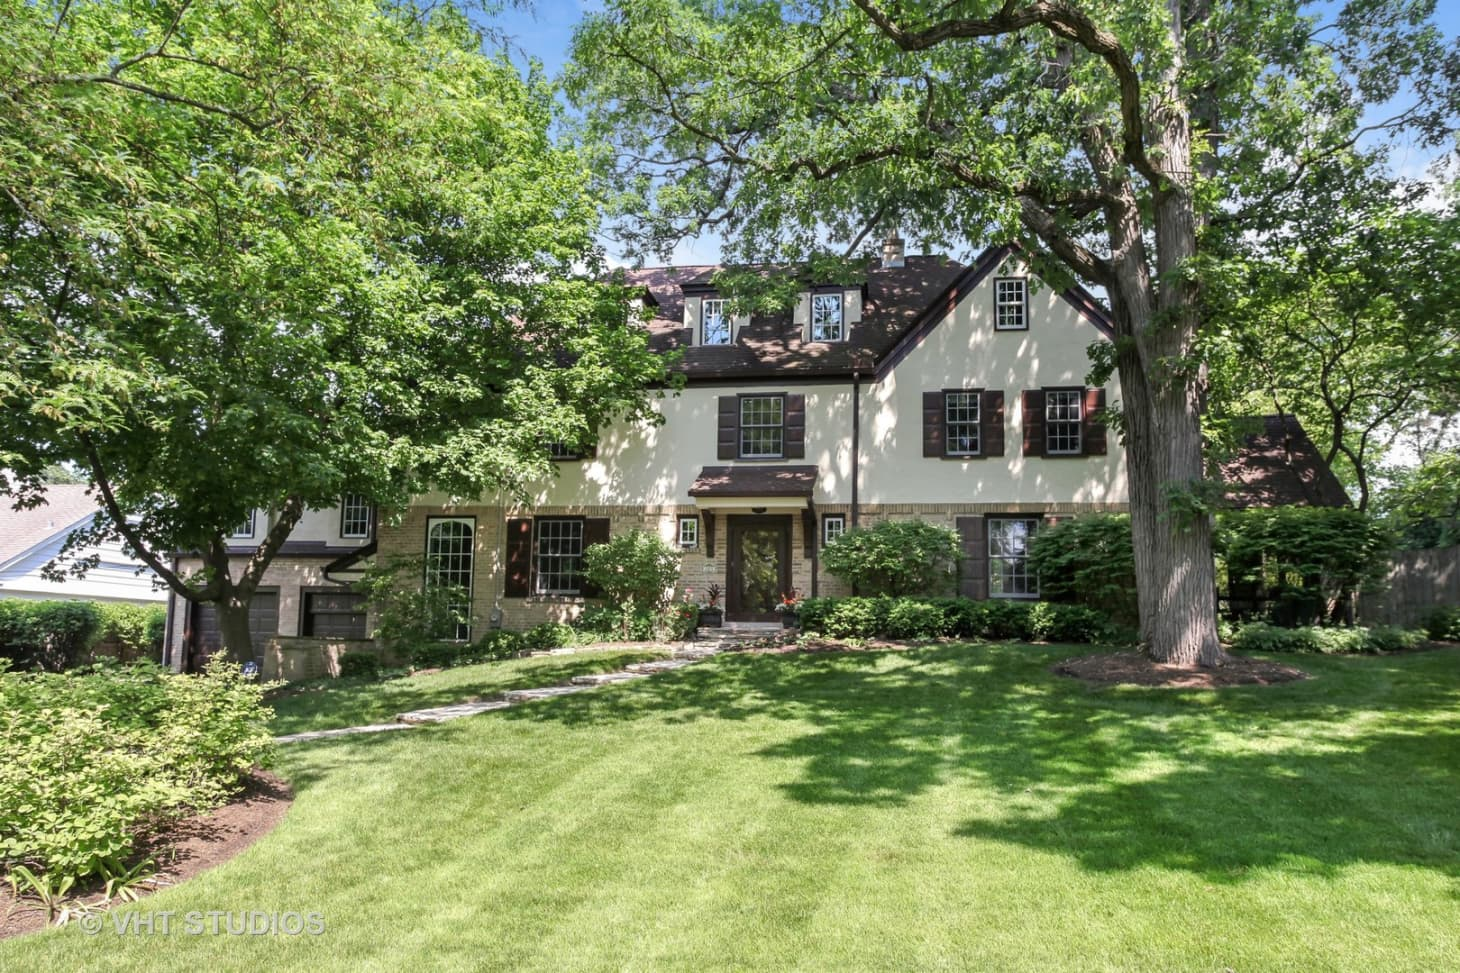 The Home Alone House, Cost of Living in Winnetka ...